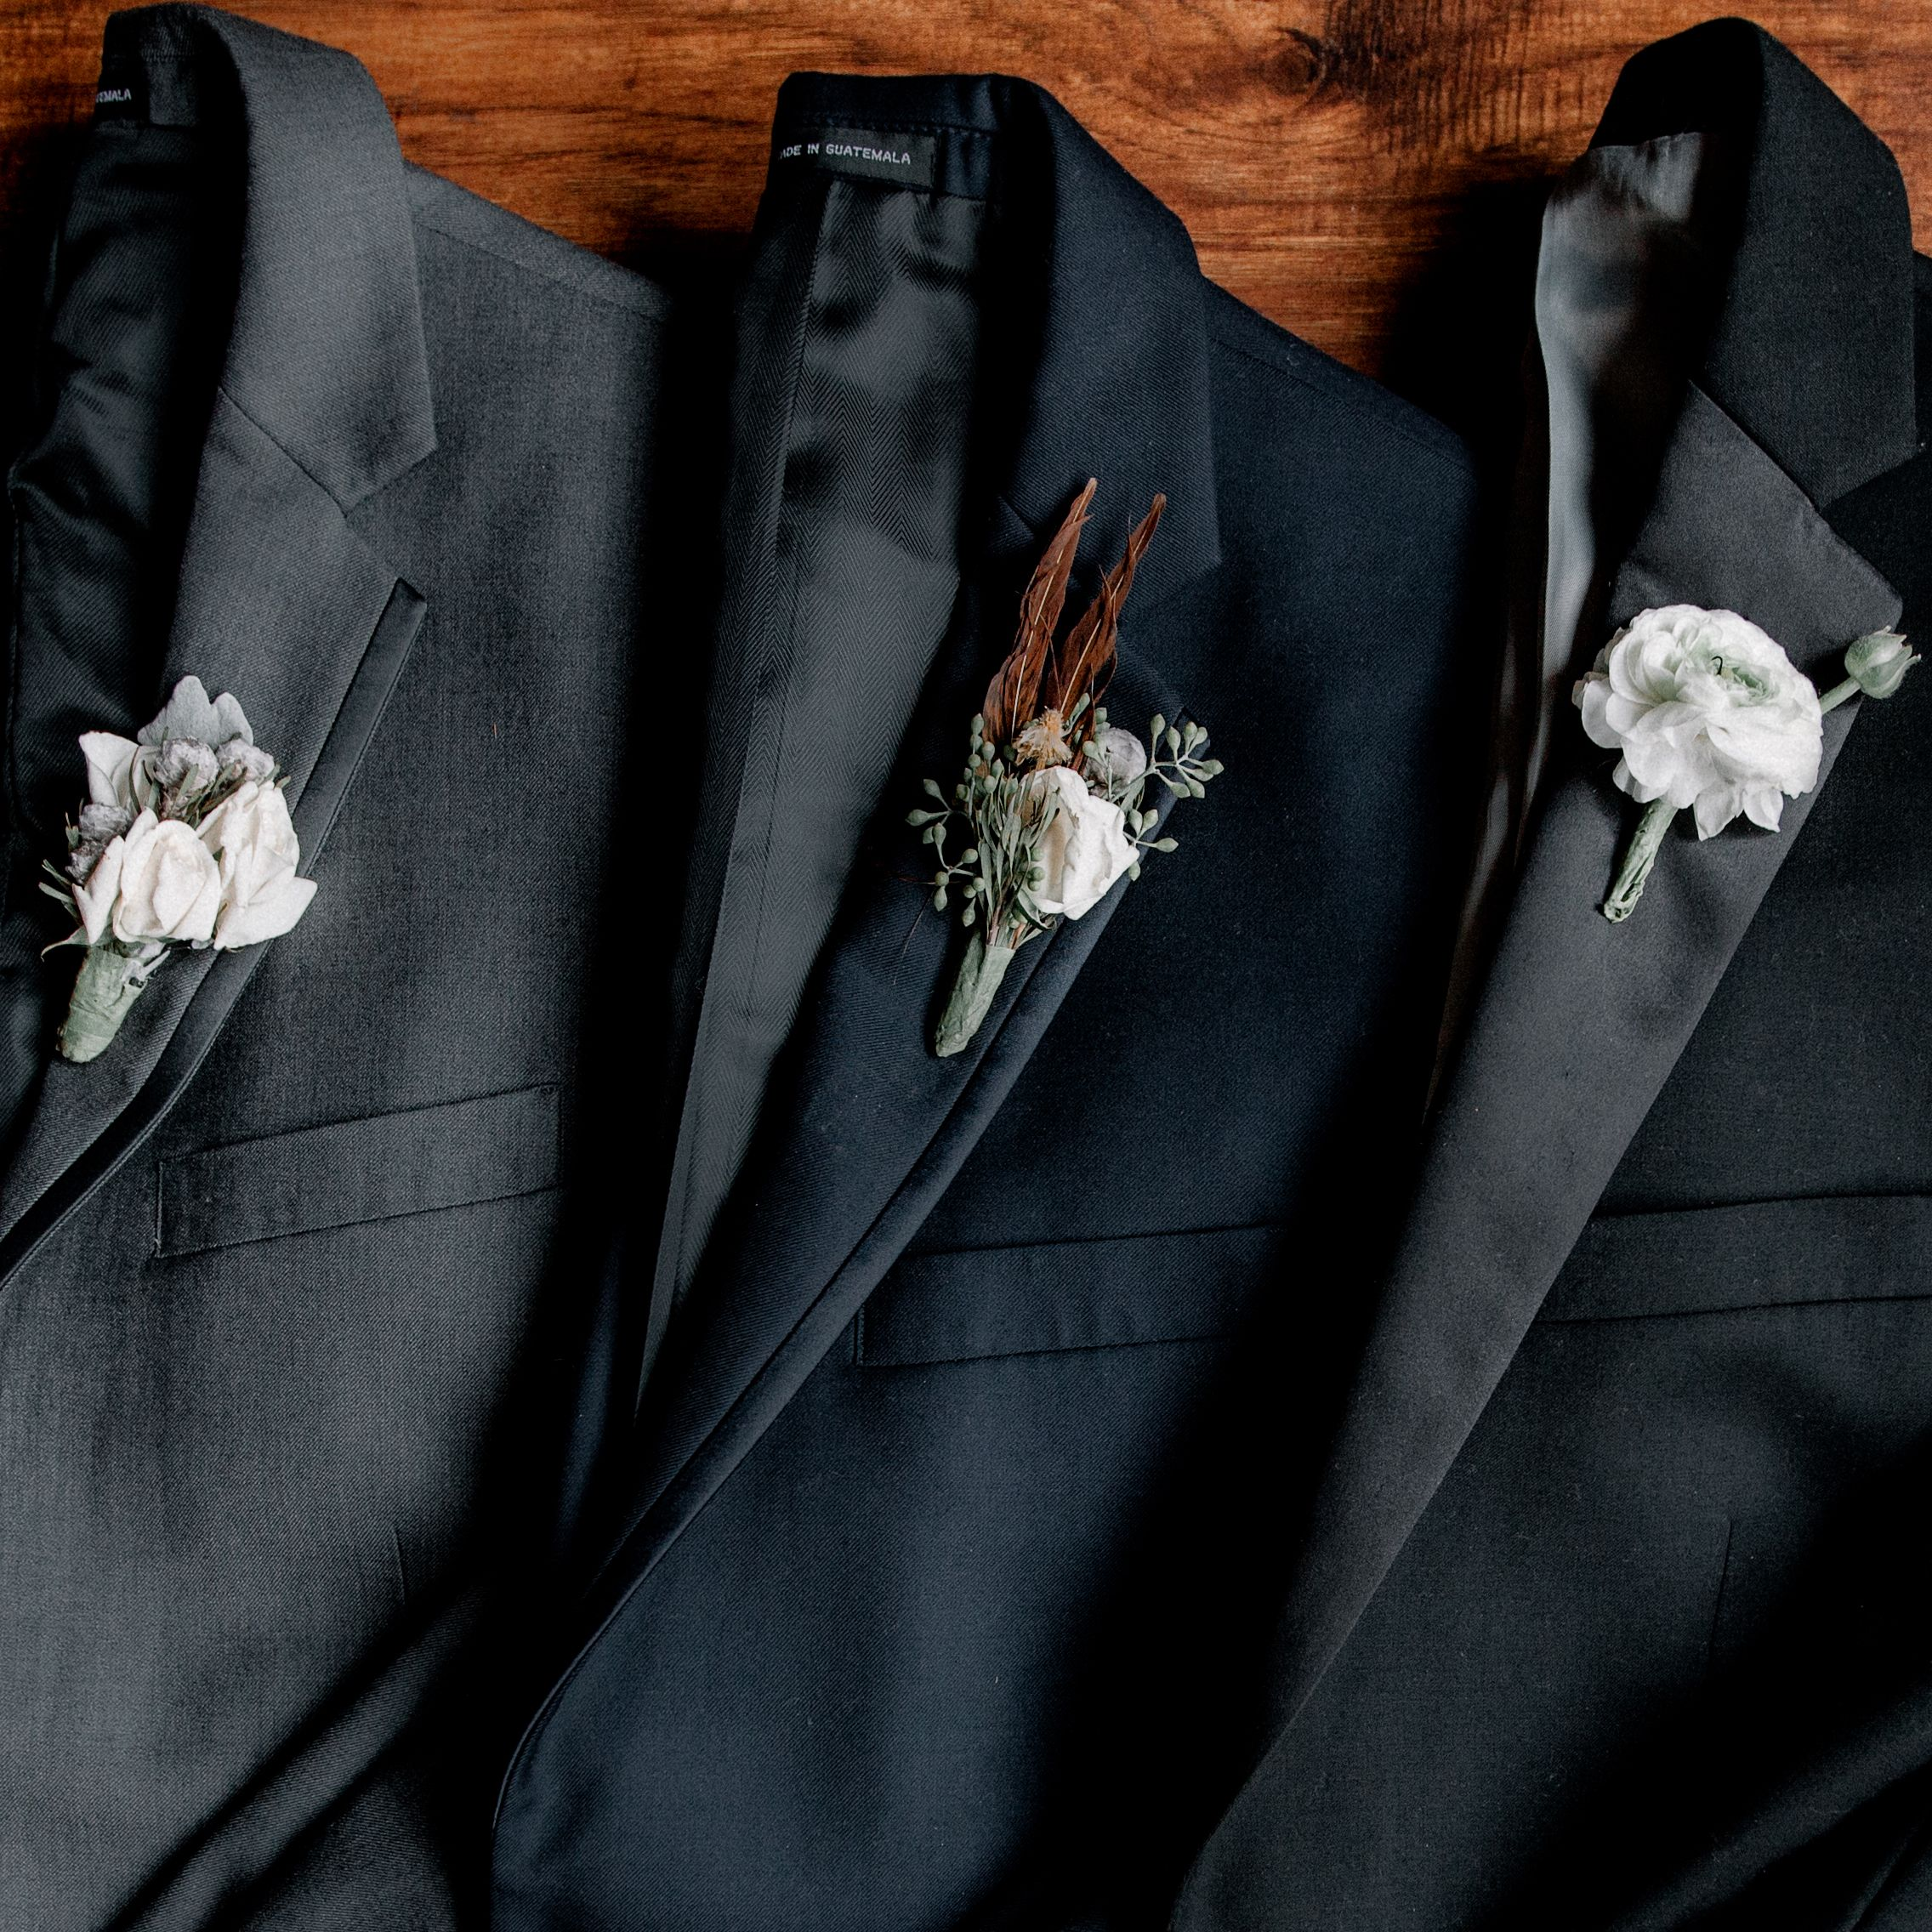 A stylish boutonniere helps signify how special the day is